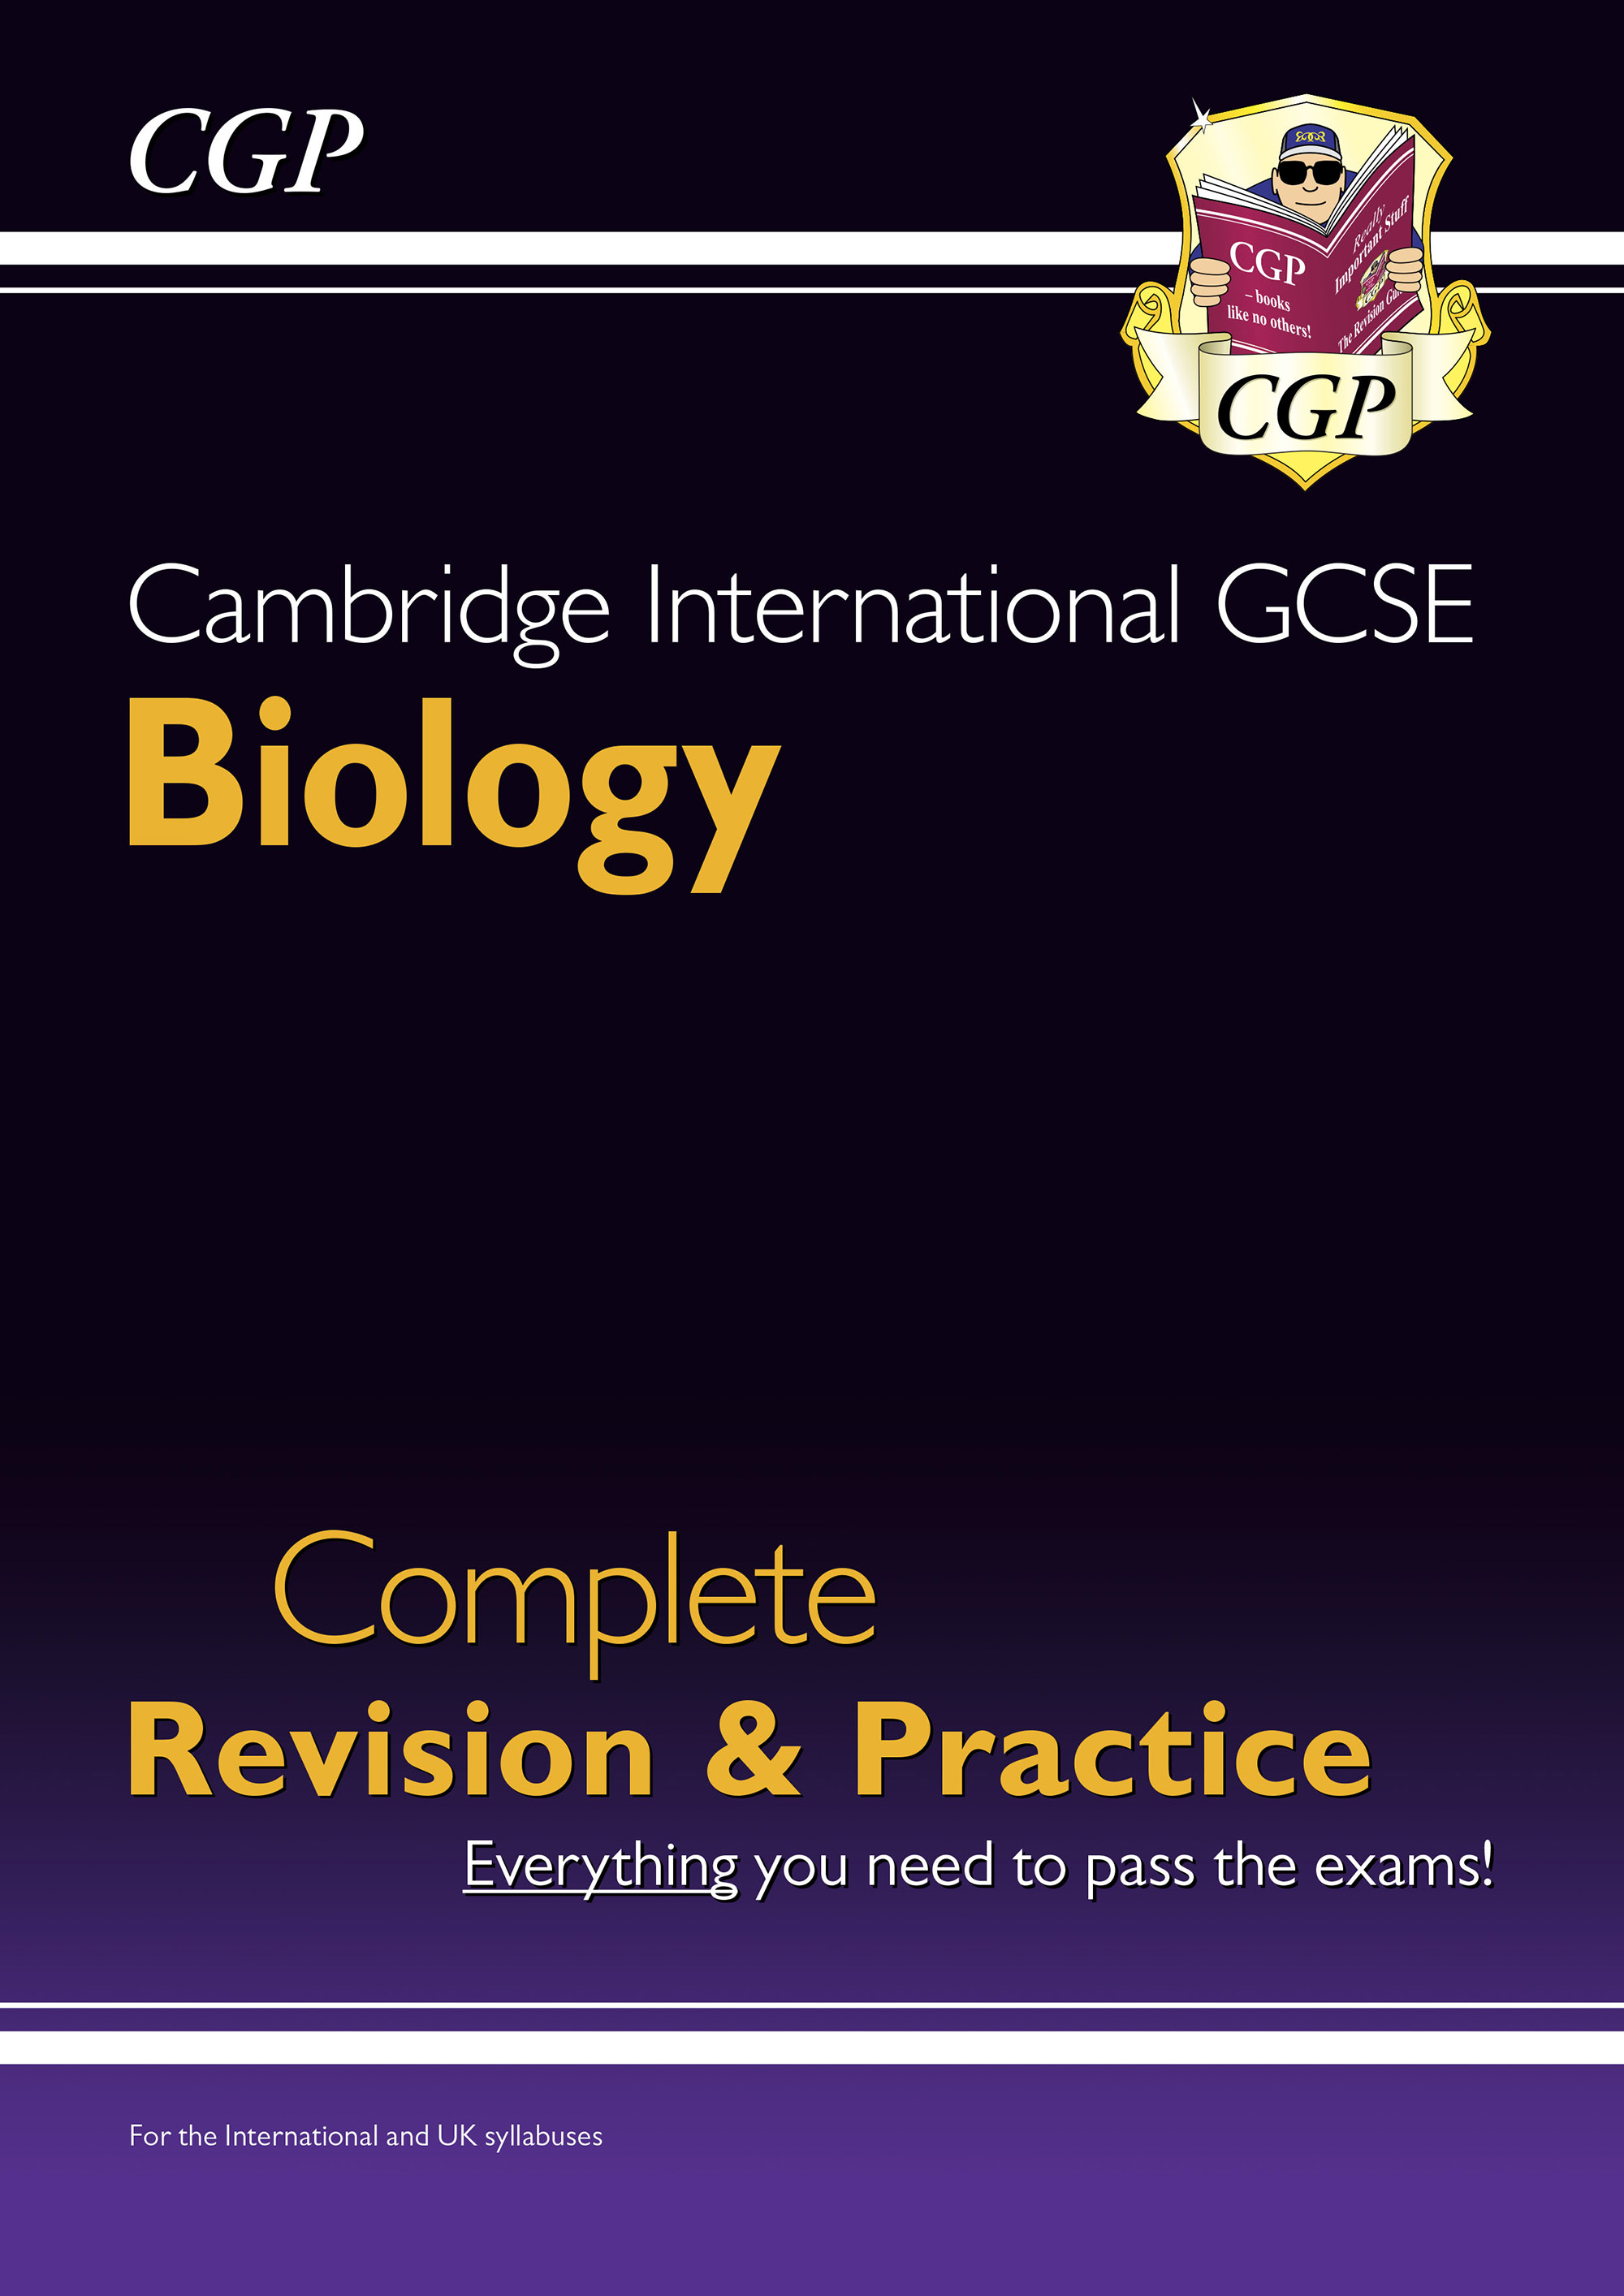 BISI41DK - New Cambridge International GCSE Biology Complete Revision & Practice: Core & Extended